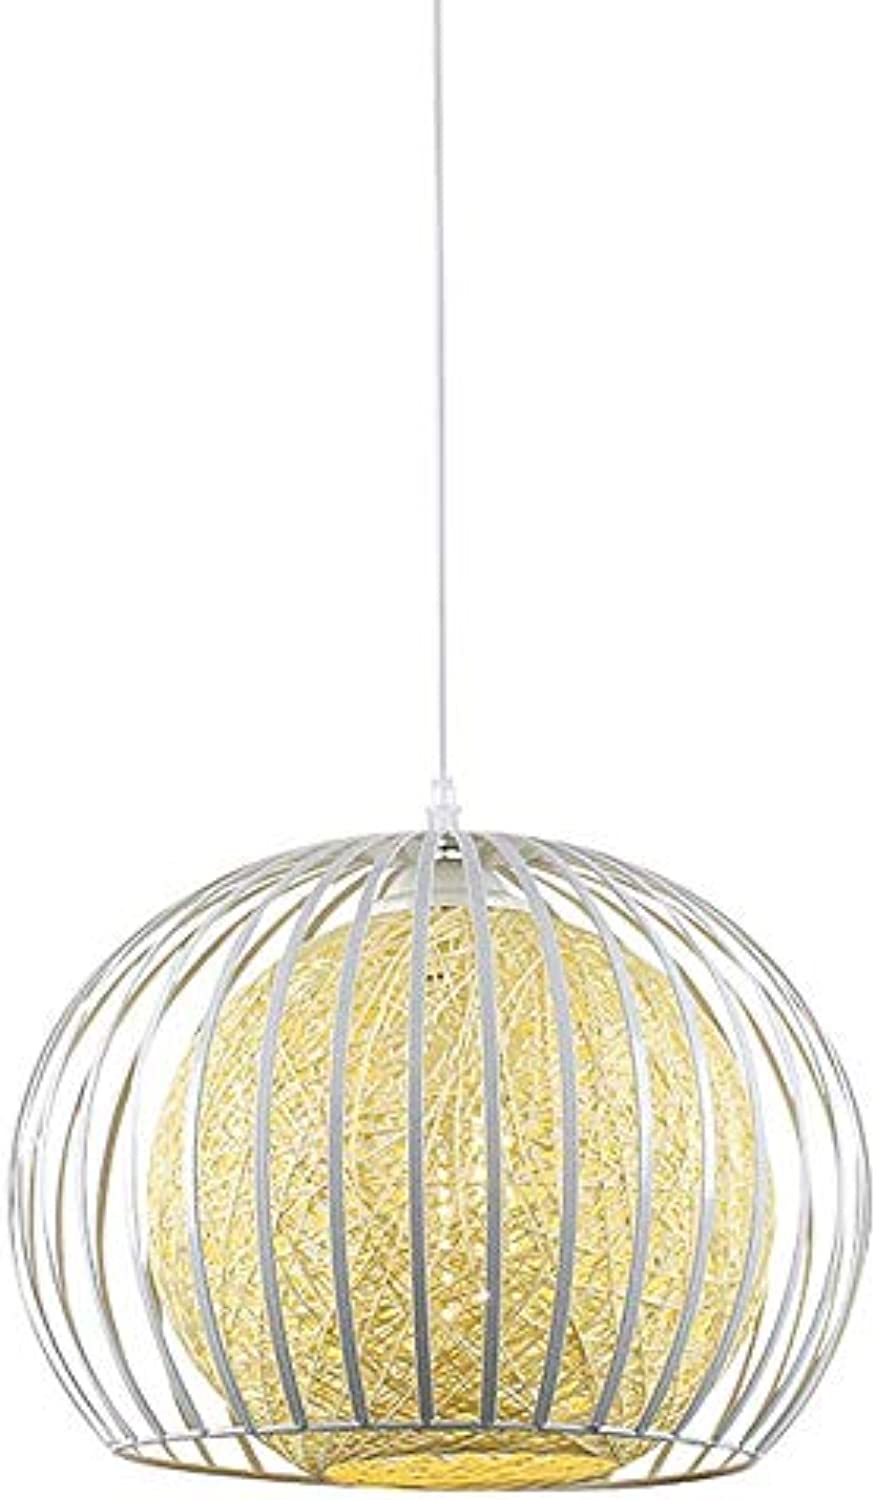 Pendant light,Restaurant Ceiling Light single-Head Modern Simple Weaving Chandelier Iron Decorative,diameter28cm,Weiß